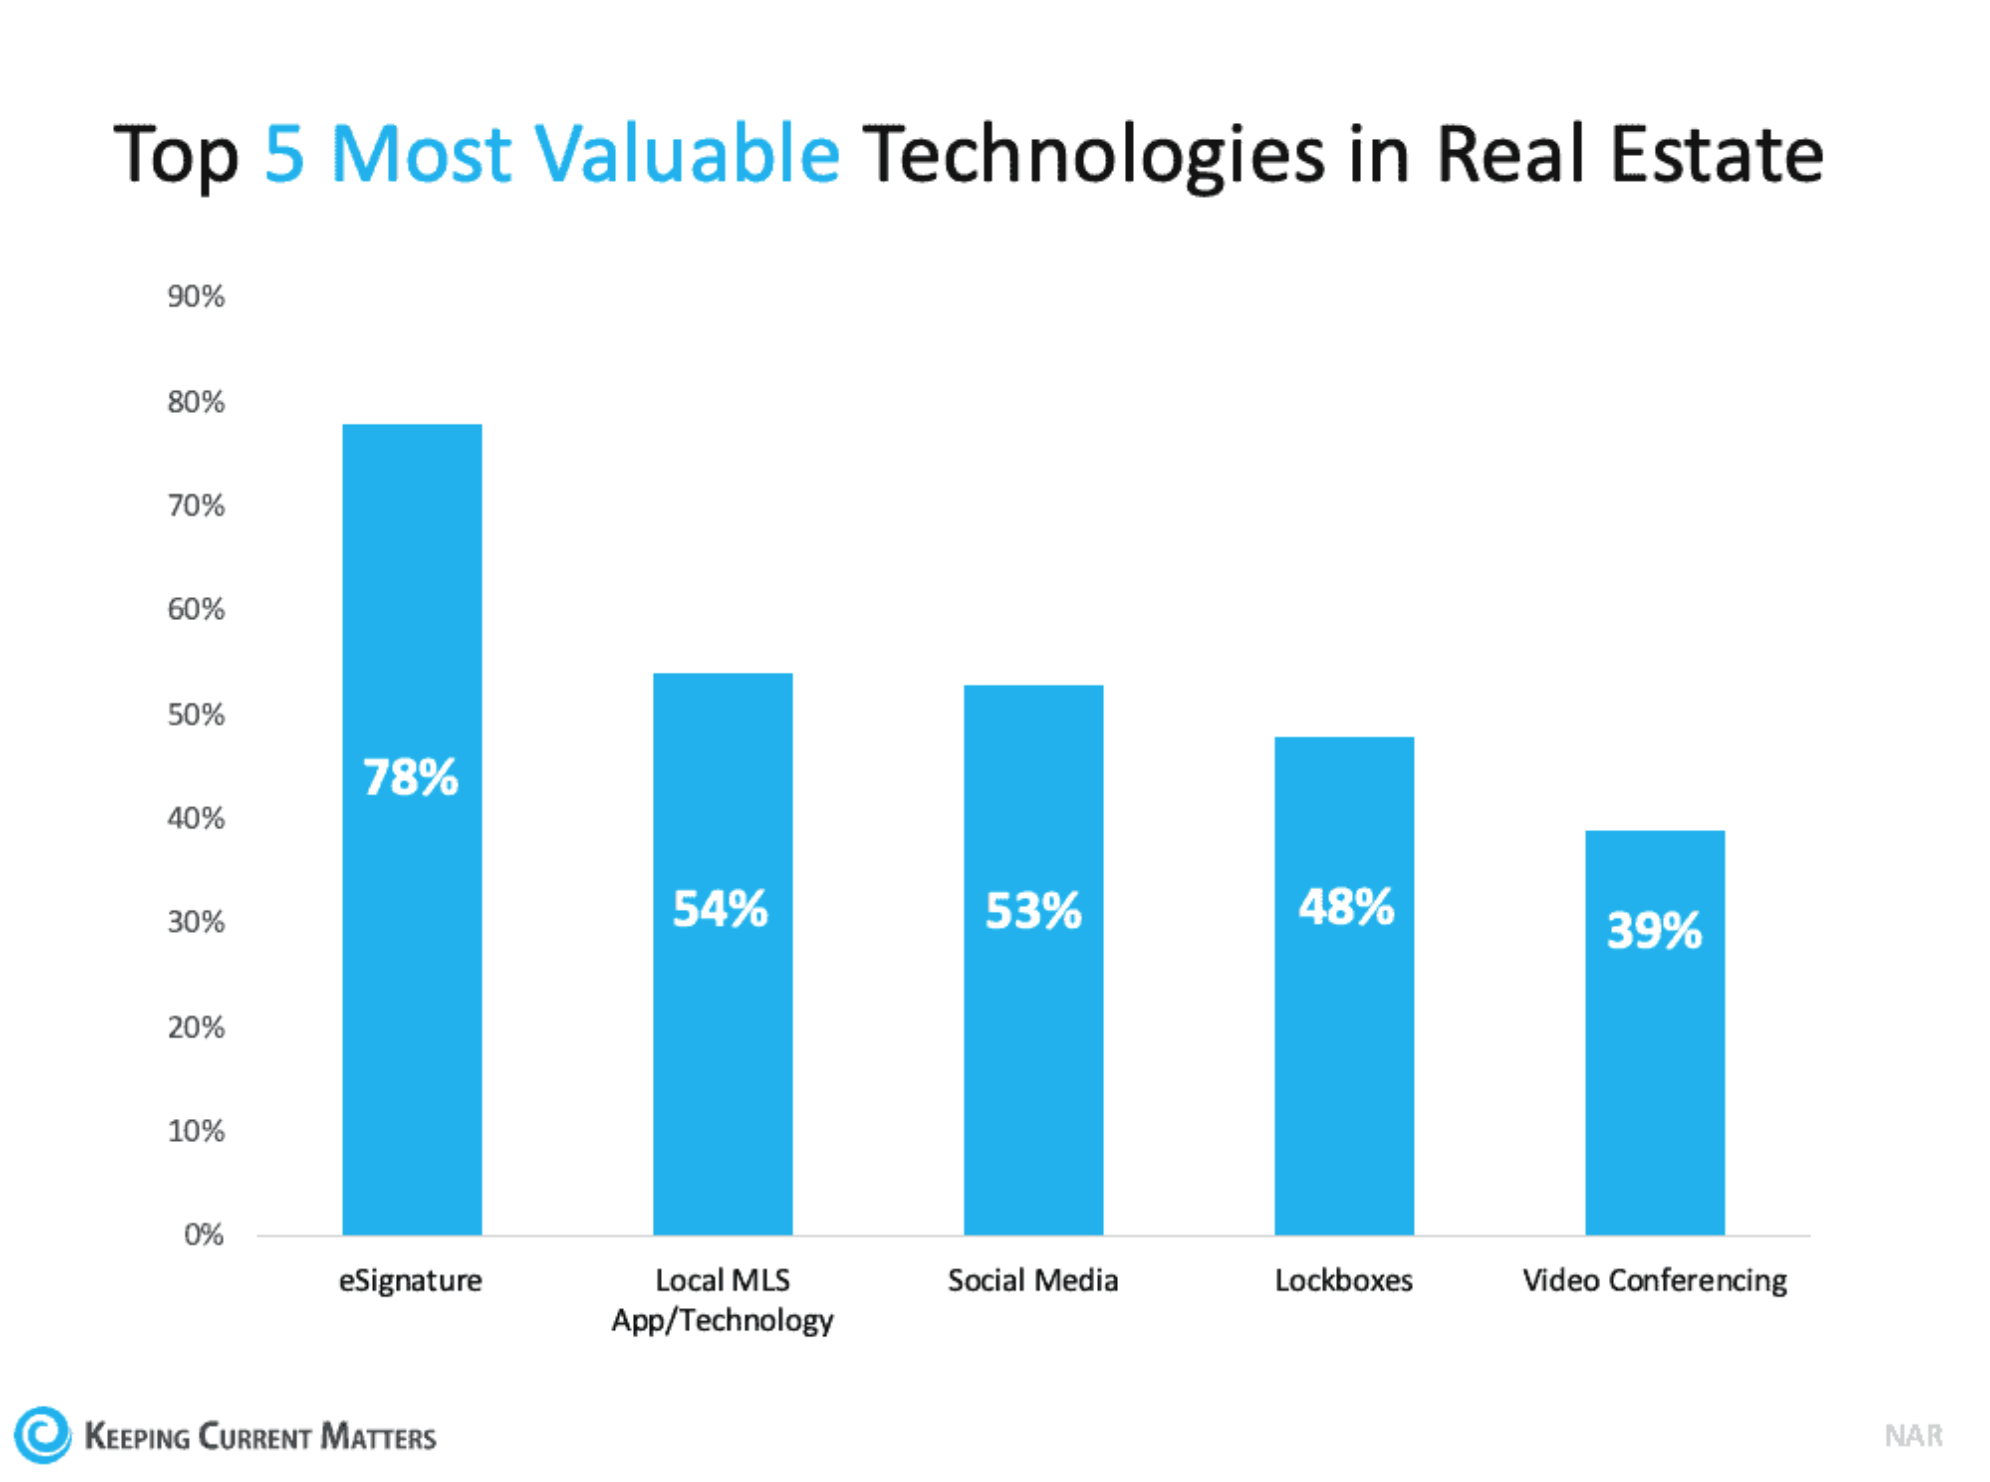 Top 5 Most Valuable Technologies in Real Estate